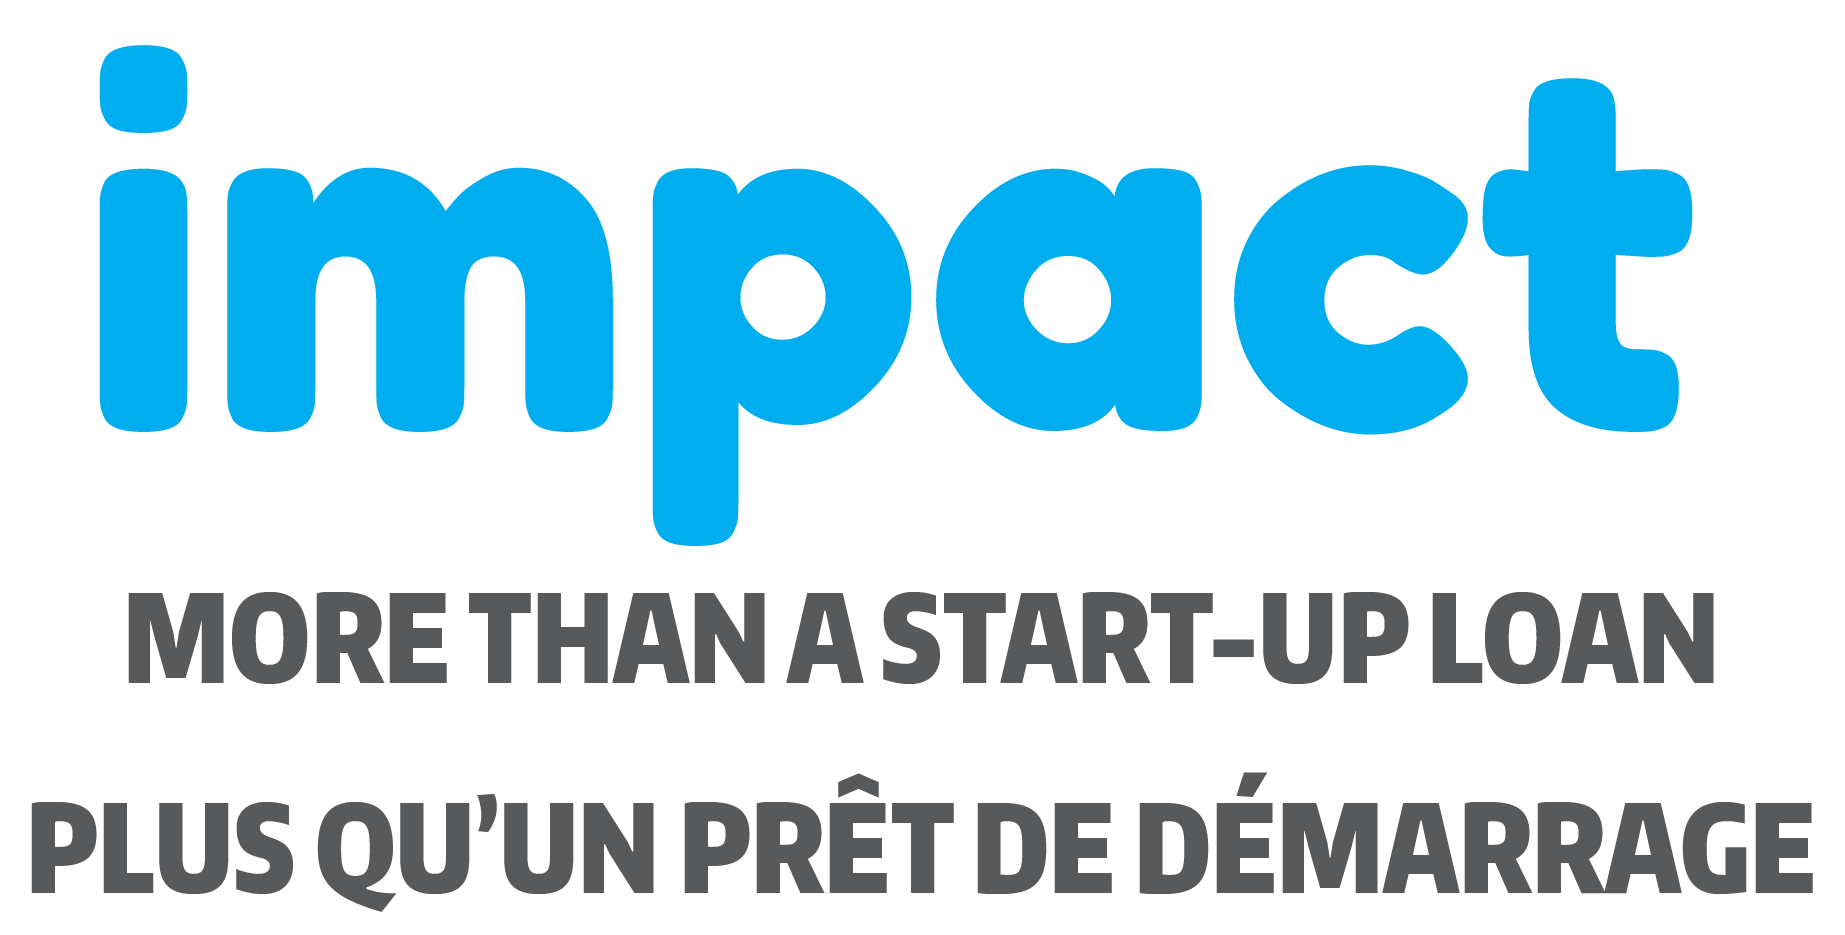 Impact: More Than A Start-Up Loan